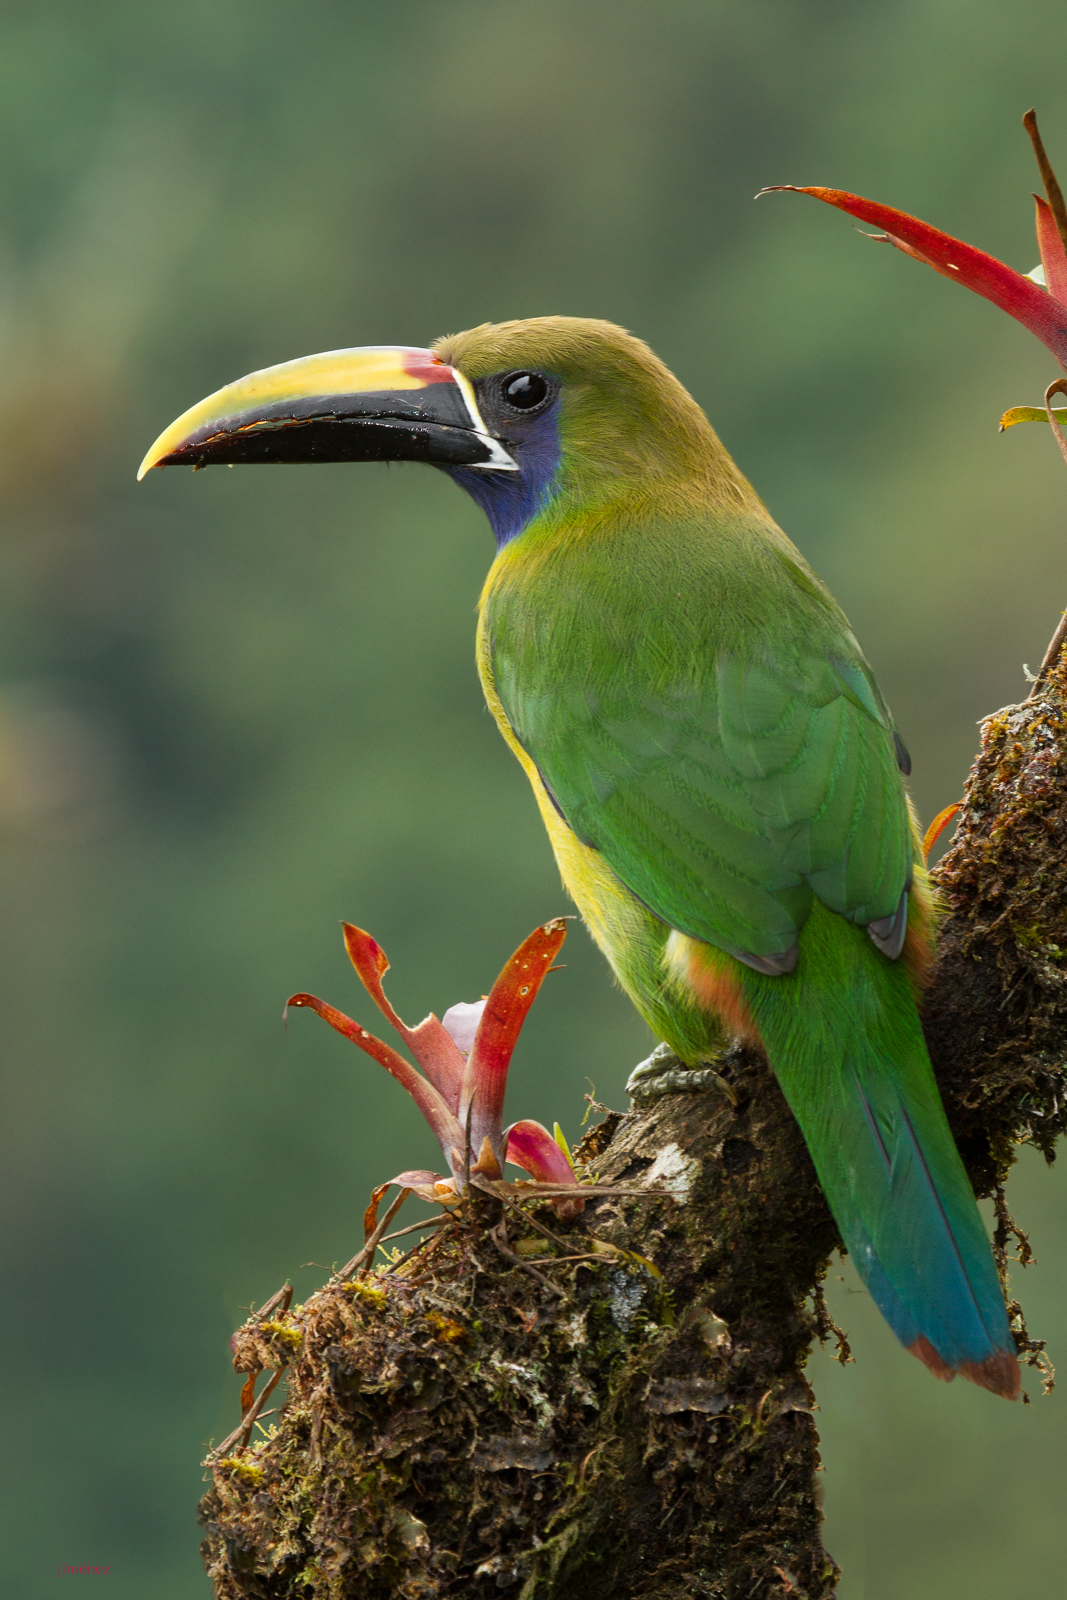 Emerald Toucanet (Aulacorhynchus prasinus) perched on a branch Virgen del Socorro, Costa Rica. For more visit http://www.chrisjimenez.net